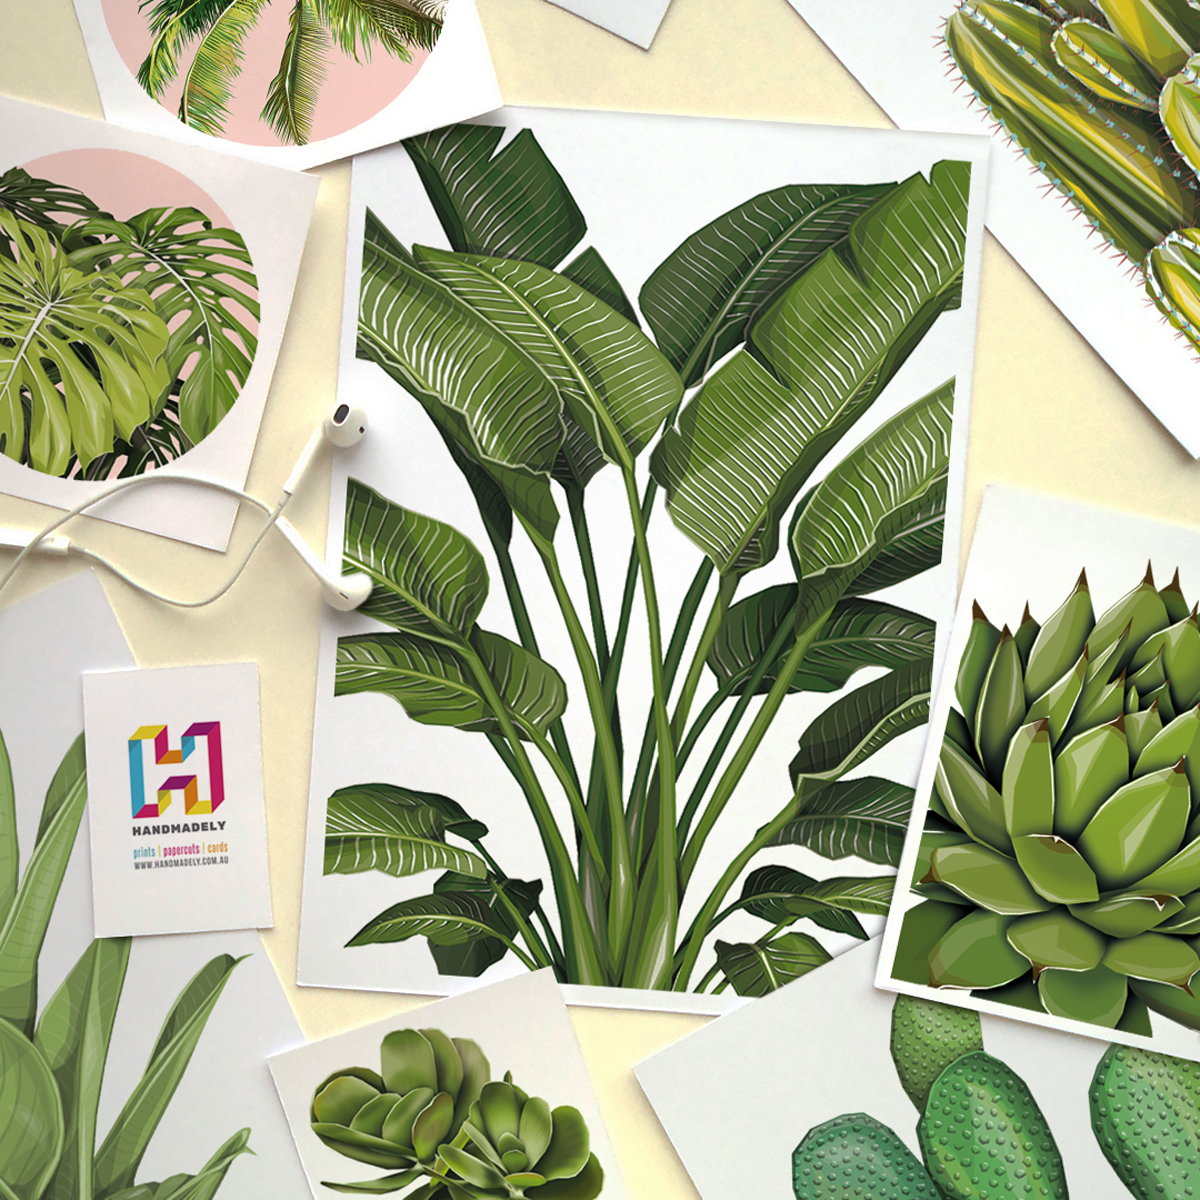 Samples of Handmadely Plant Prints